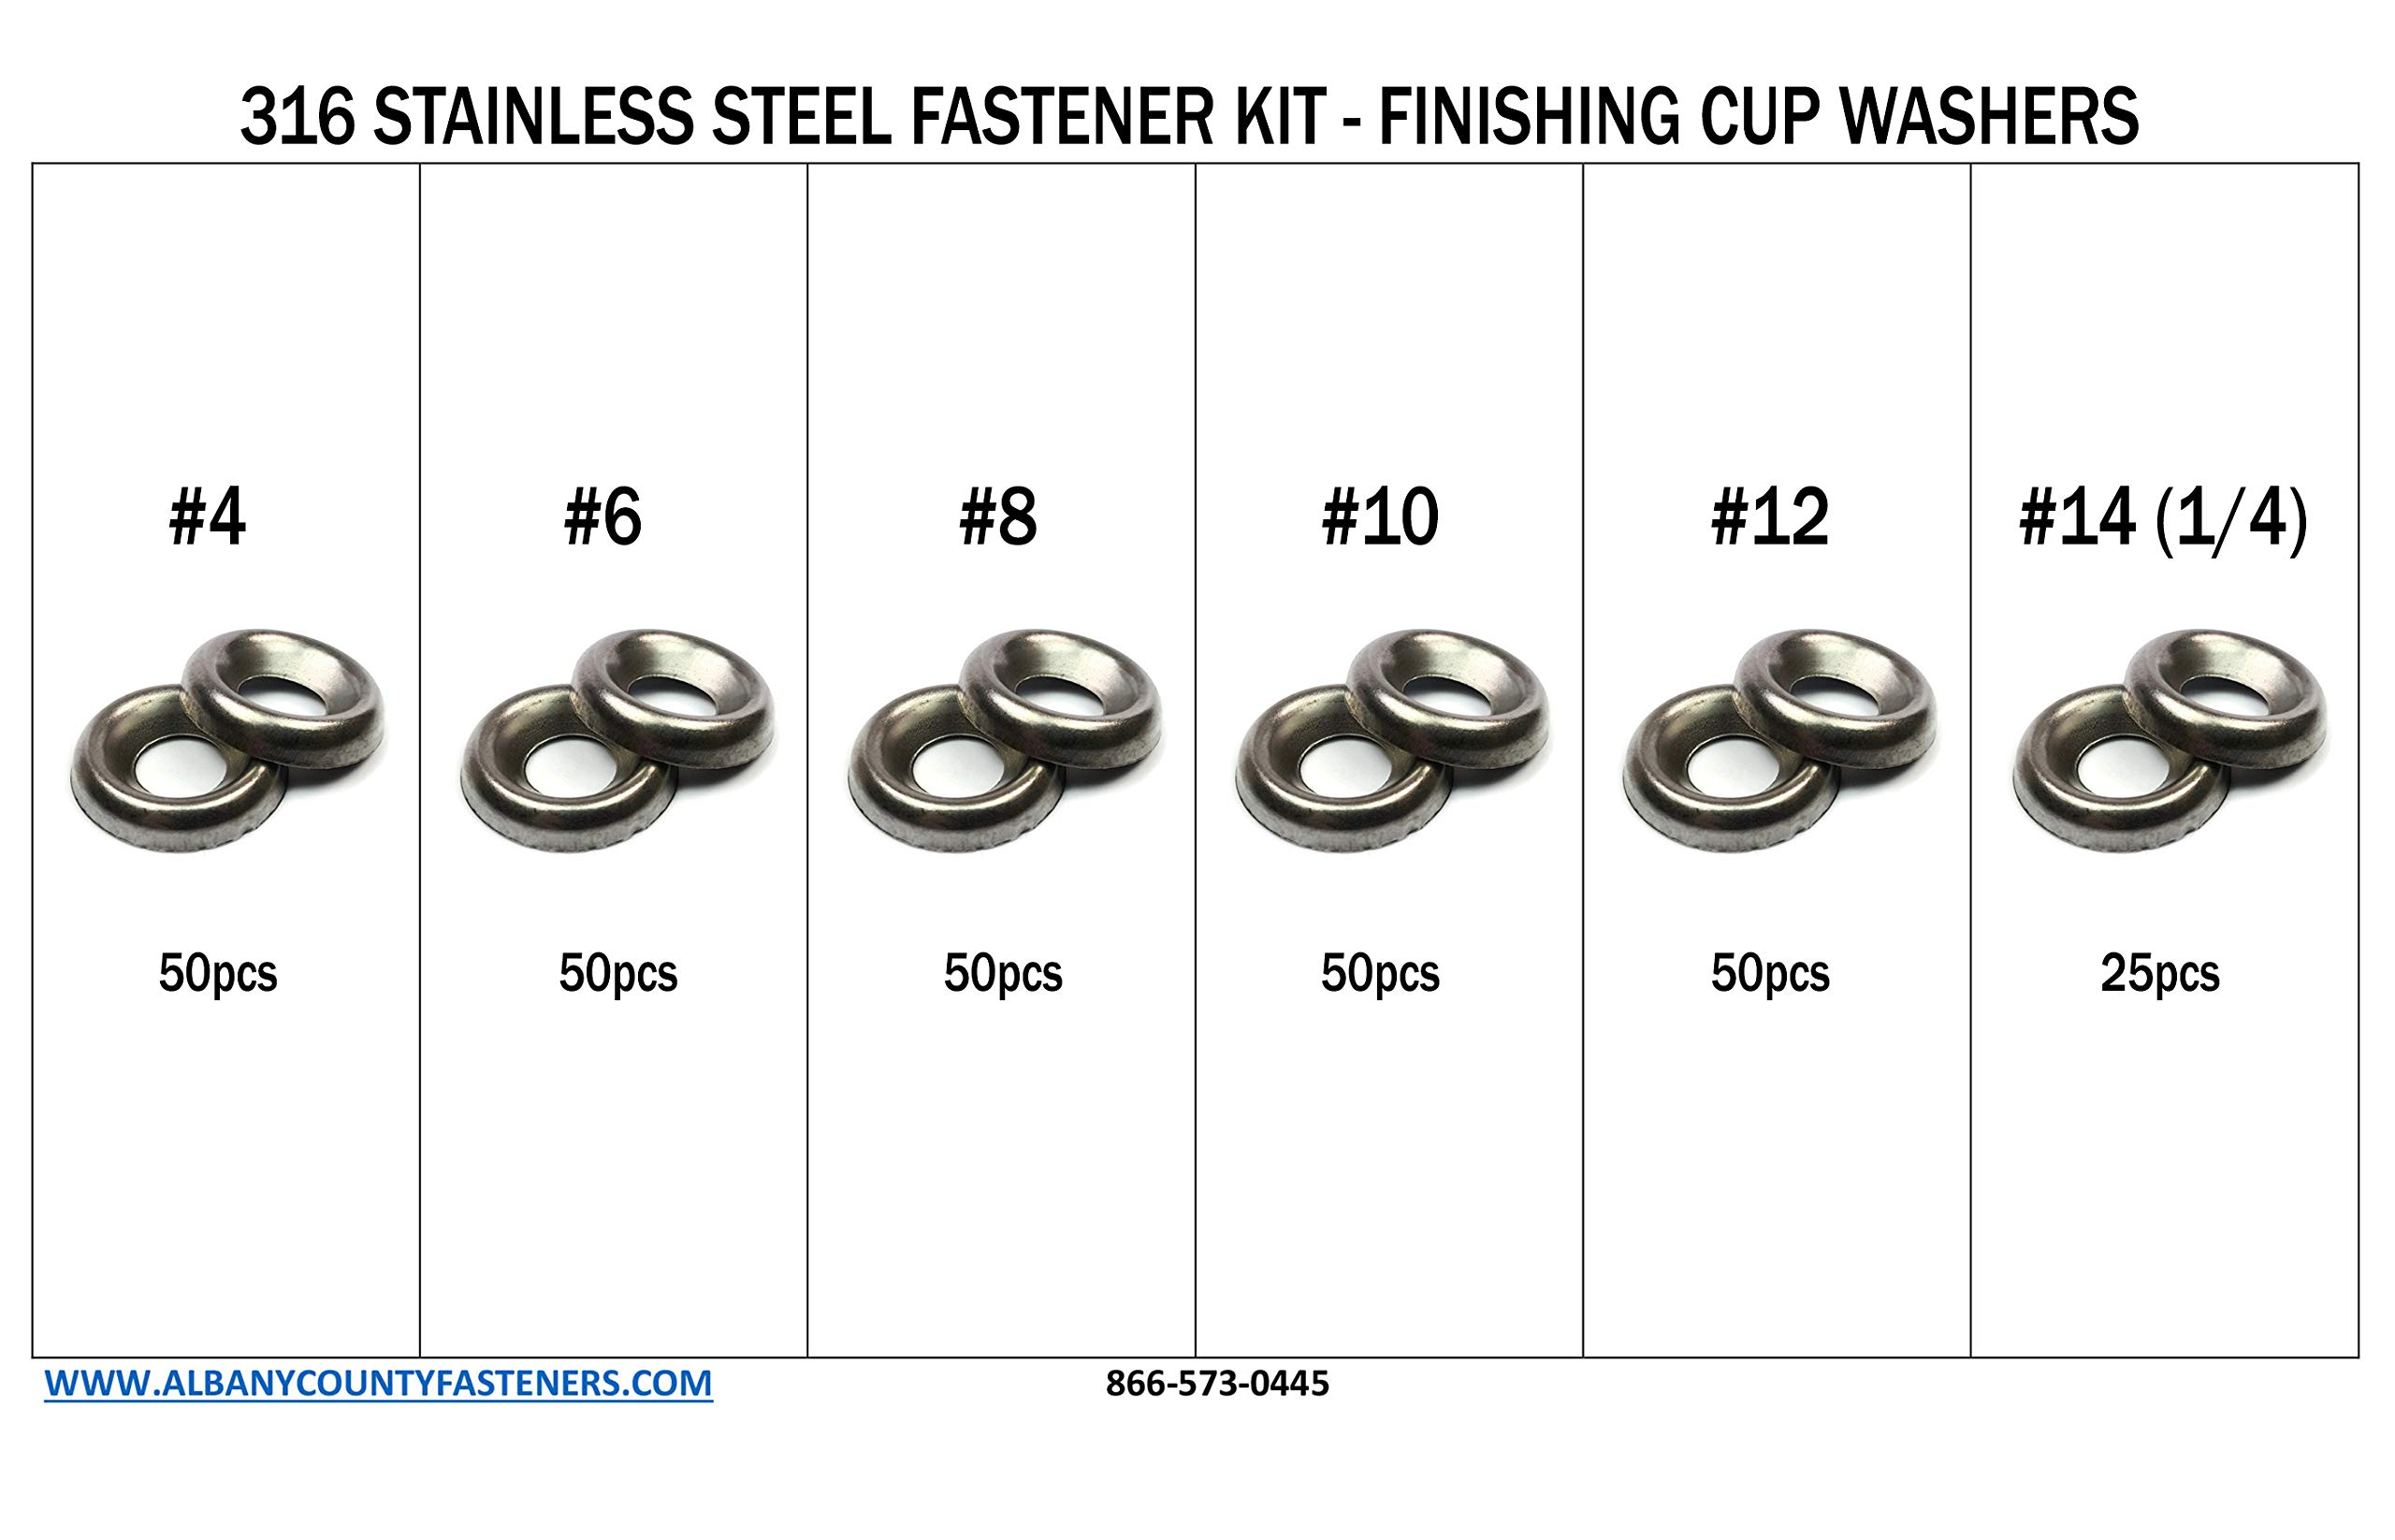 316 Stainless Steel Countersunk Finishing Cup Washers Kit sizes #4 through 1/4'' - 276 pieces